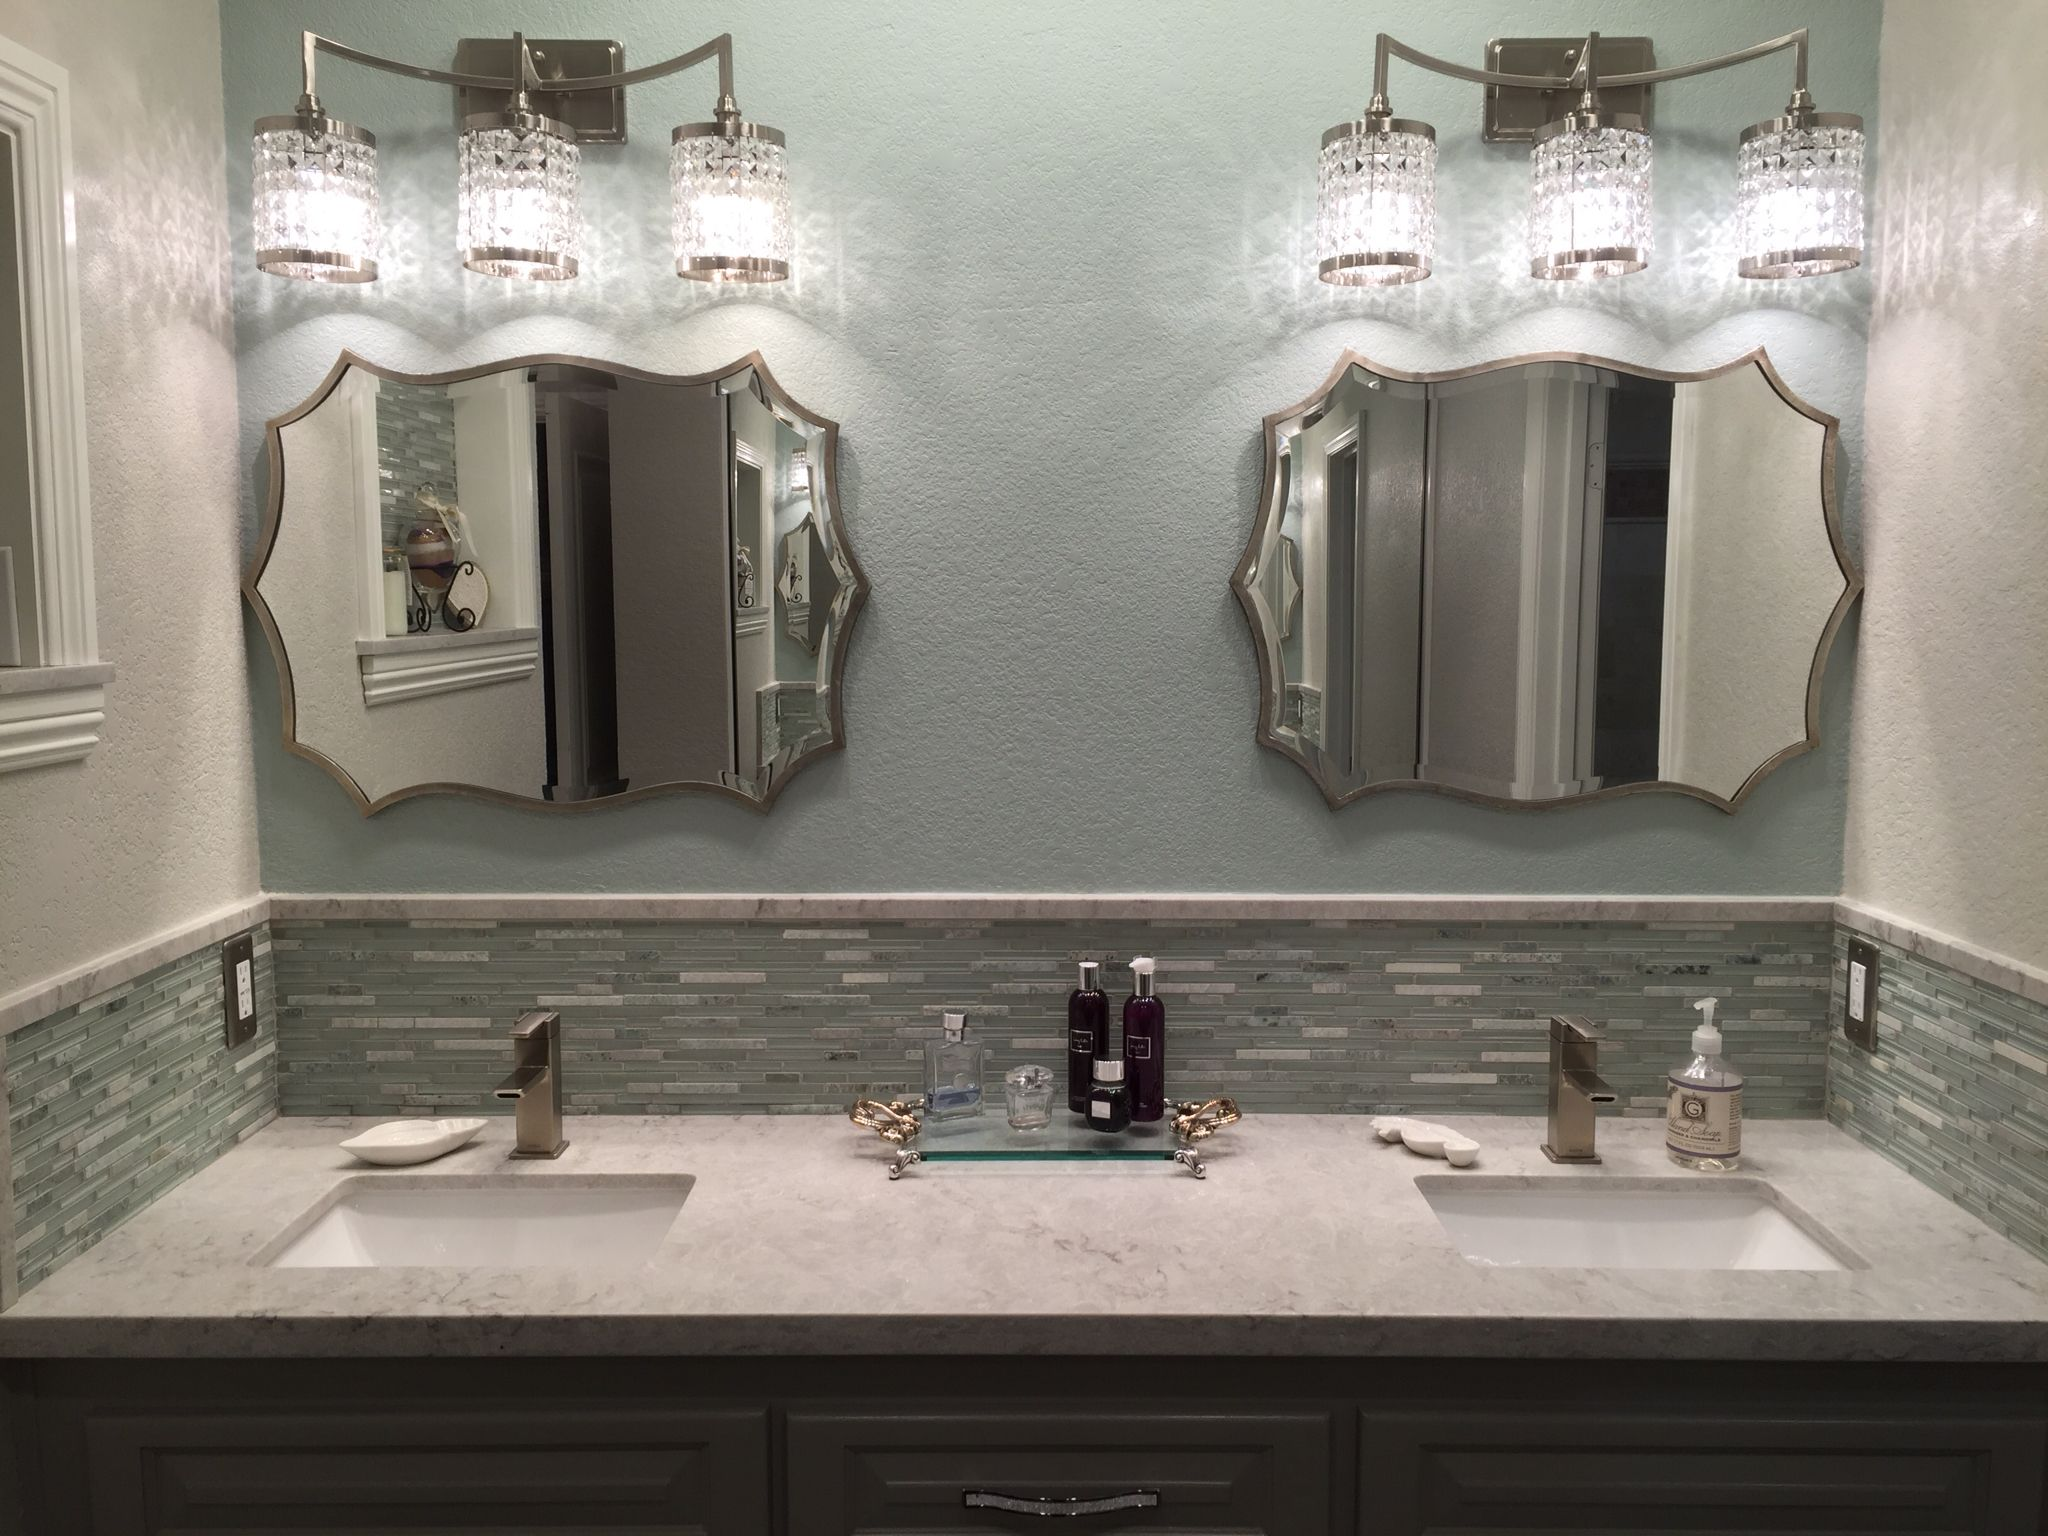 Mirrors by Uttermost lights from Houzz.com